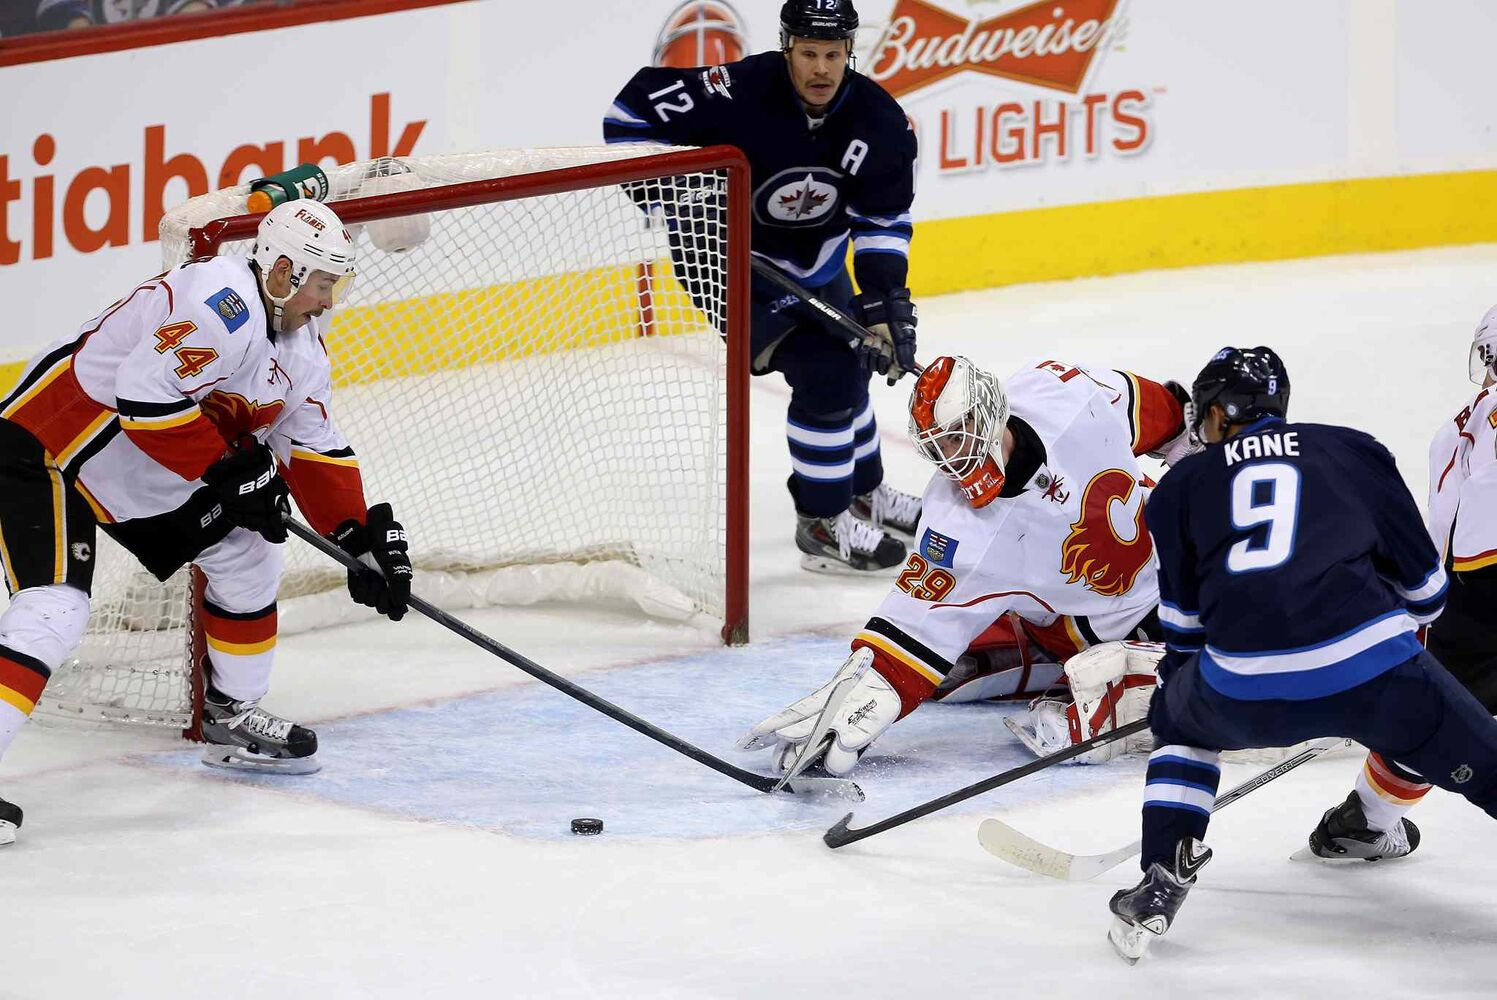 Calgary Flames' Chris Butler (44), goaltender Reto Berra (29) and Winnipeg Jets' Evander Kane (9) all swipe for a free puck in front of the net during first period NHL hockey action in Winnipeg Monday, Nov. 18, 2013.